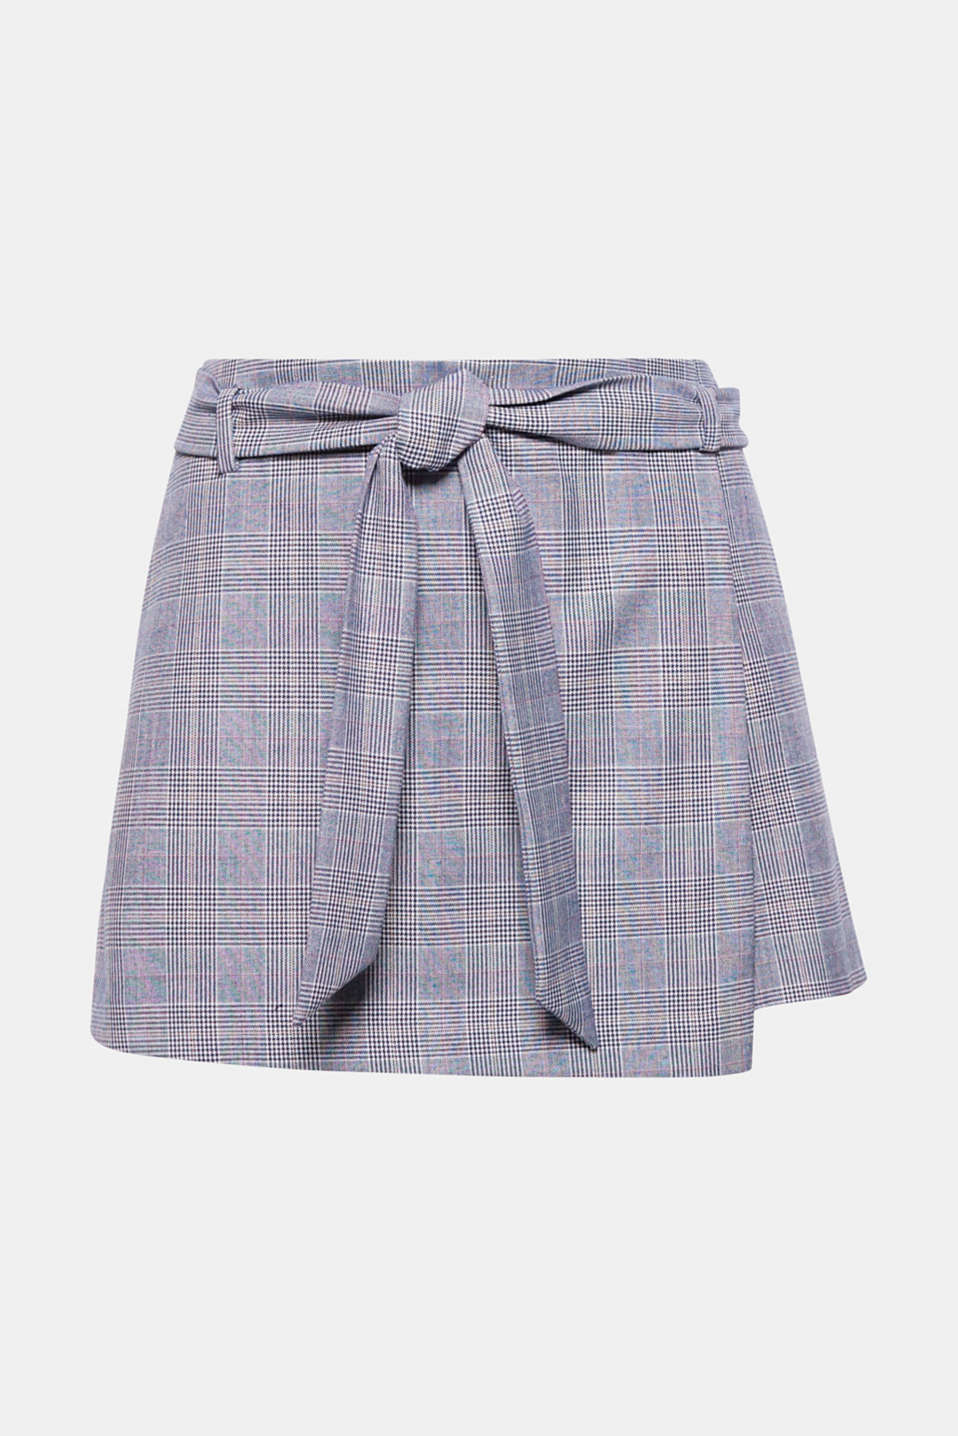 The wrap-over effect with a bold bow detail instantly transforms these shorts into a stylish skirt.